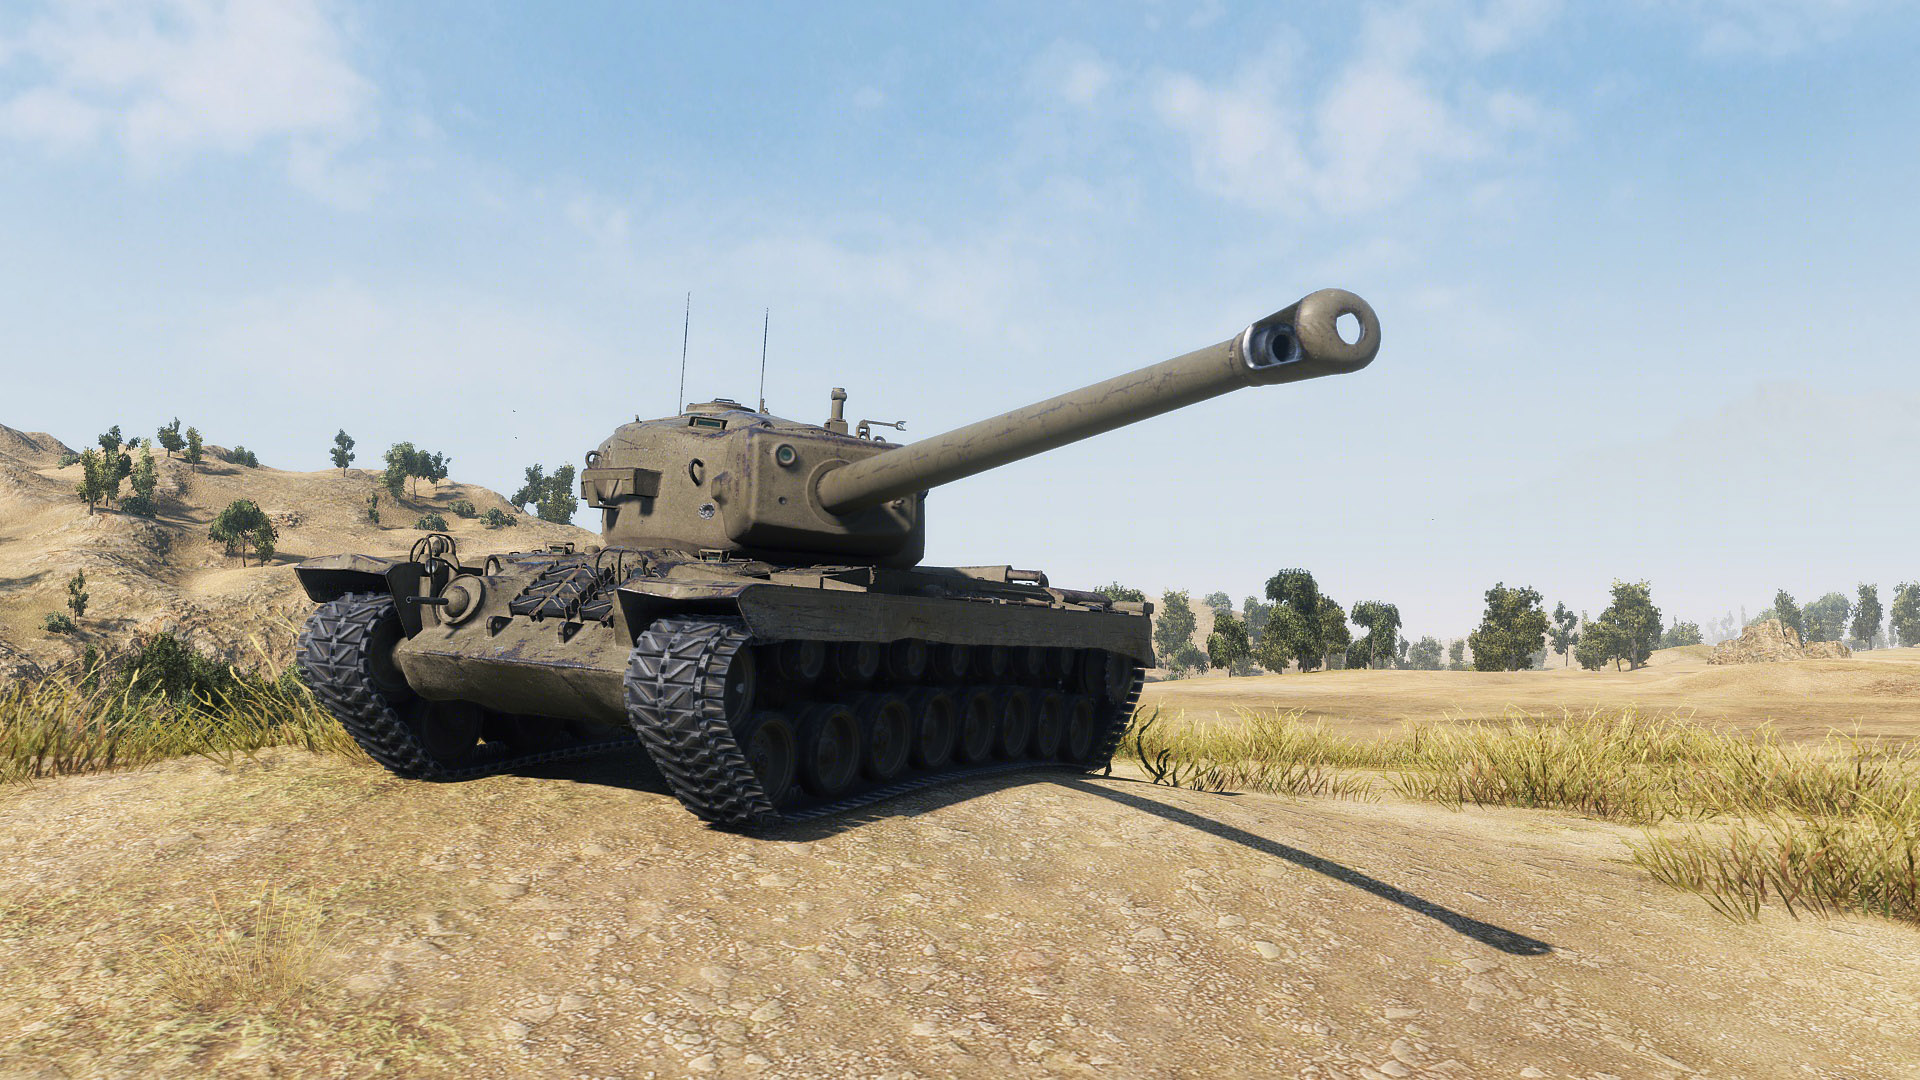 M 56 Scorpion For Sale In California: WoT Extra History: Schlacht Um Saipan (Teil 1)